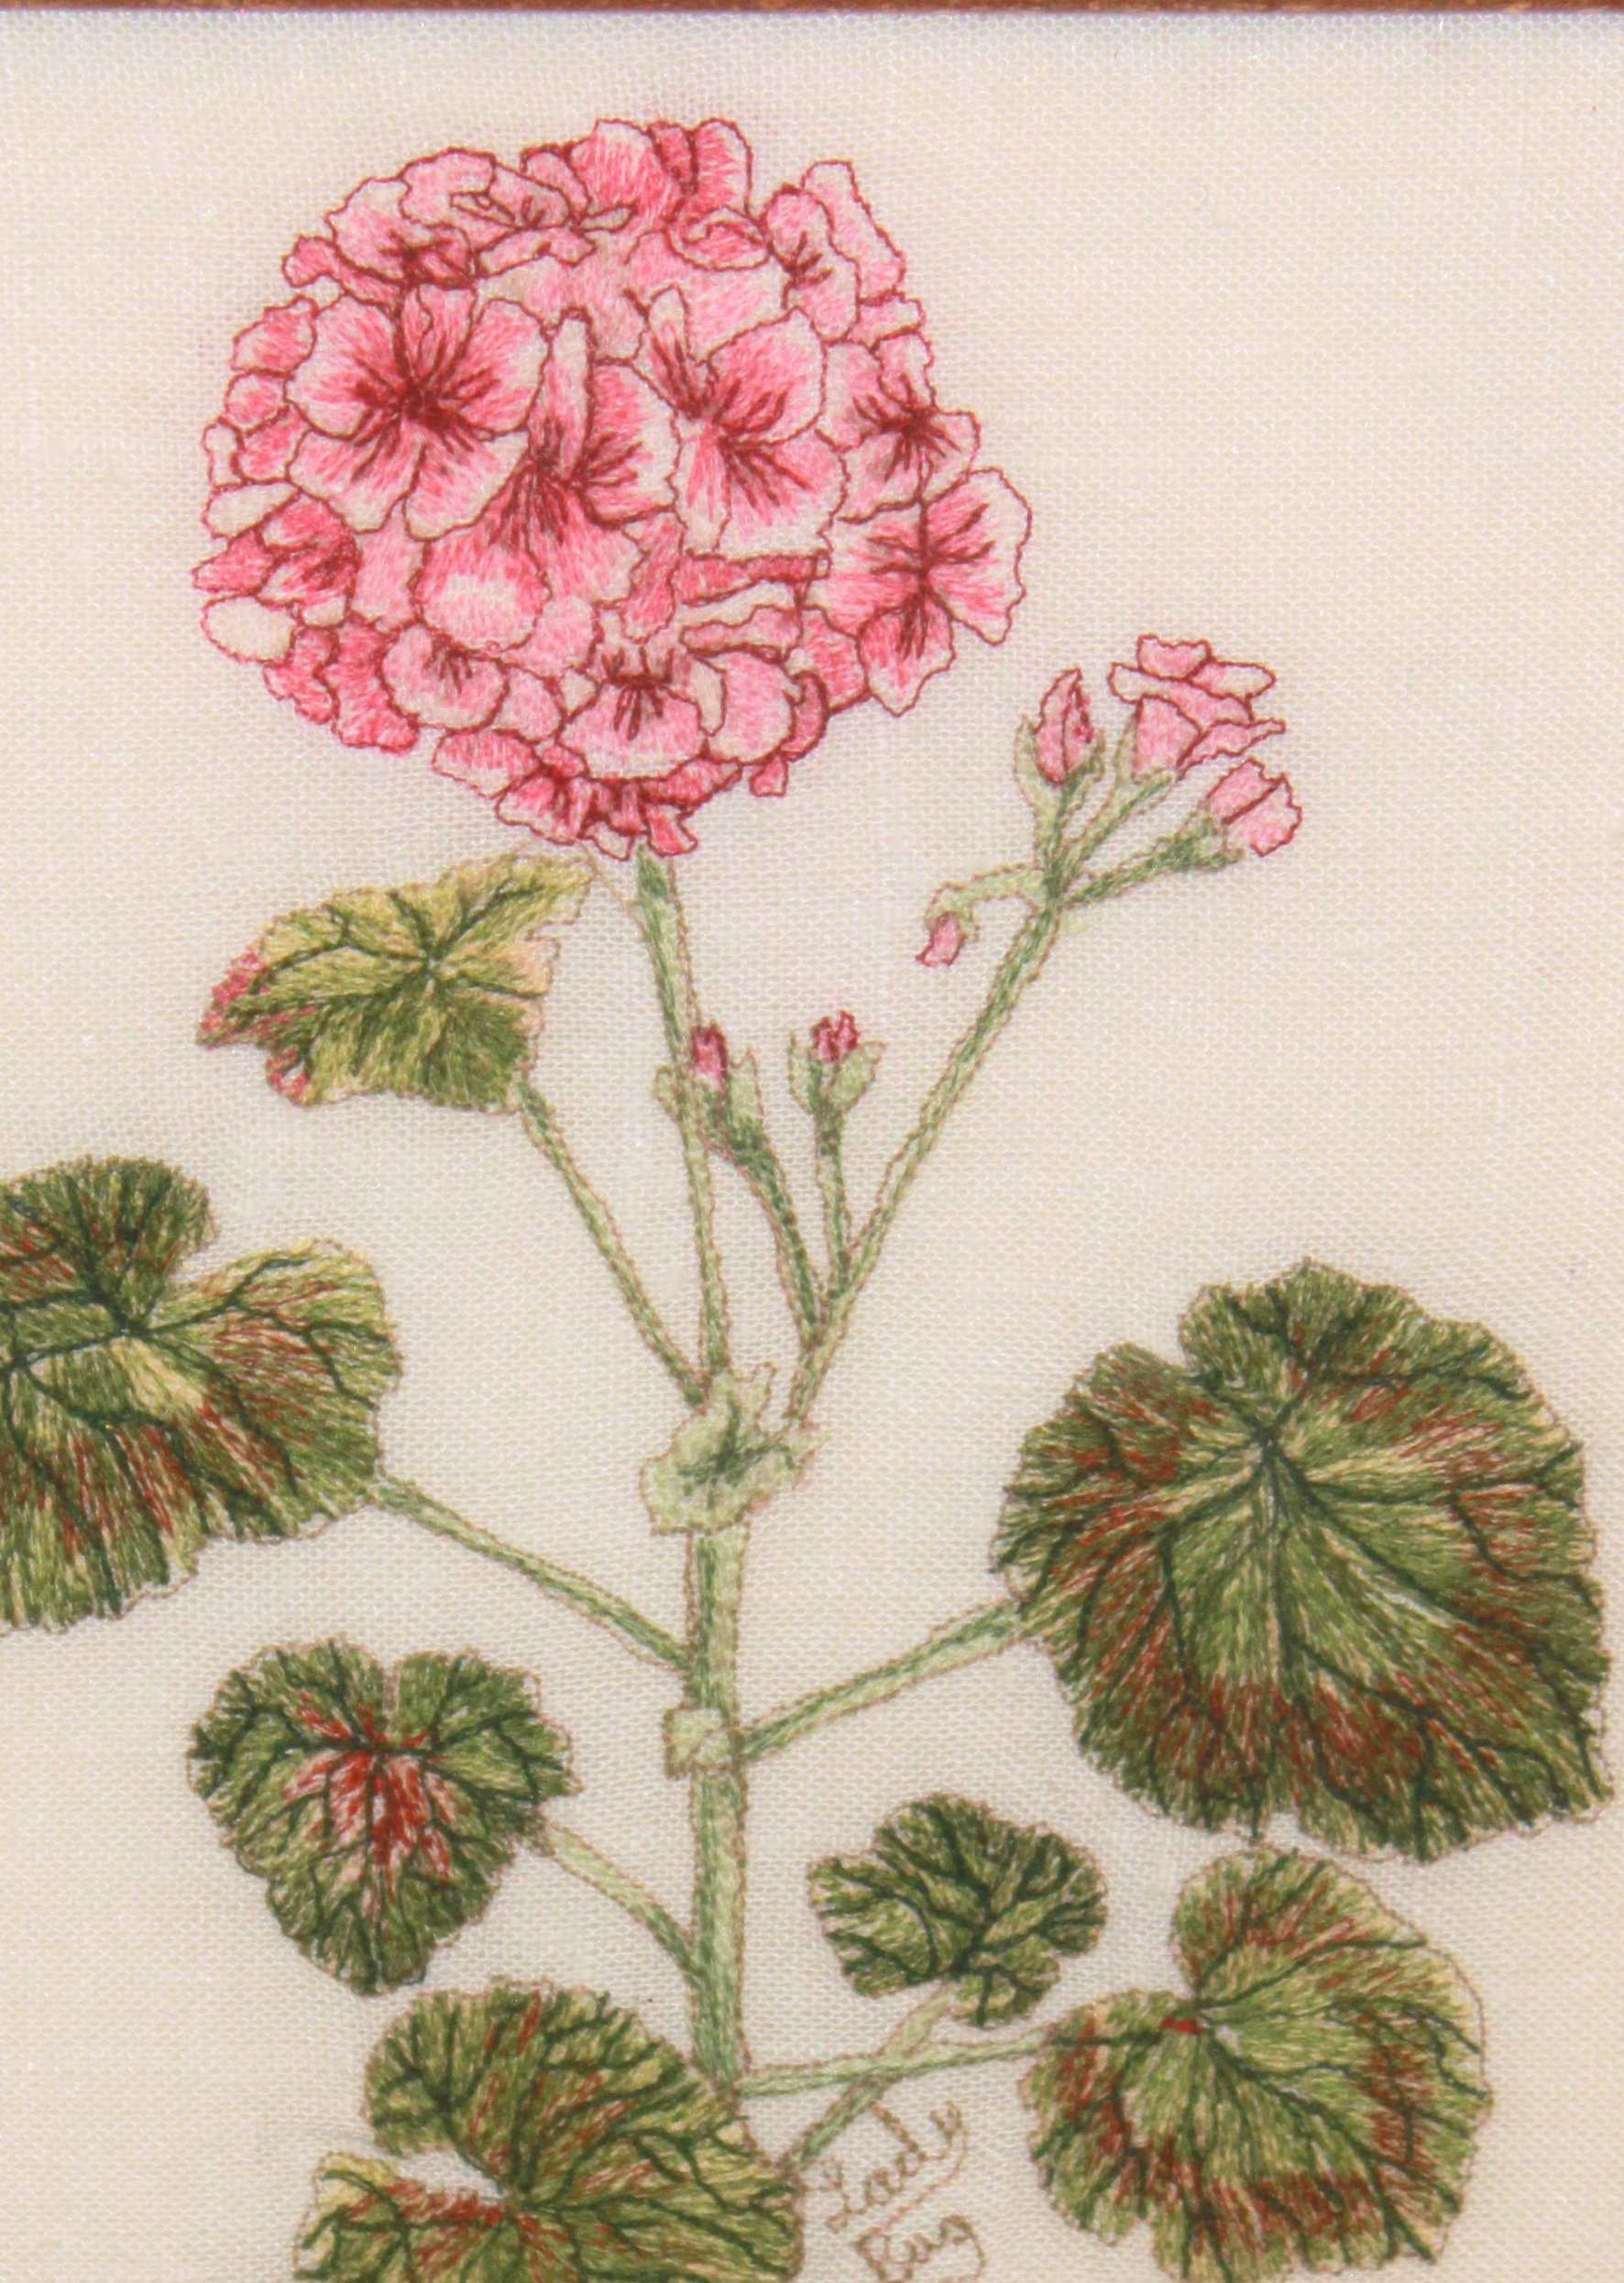 AinB016 quilt 23 24 25 Turner Carlson Stowe embroidery entry. Turner geranium-001 thumbnail1